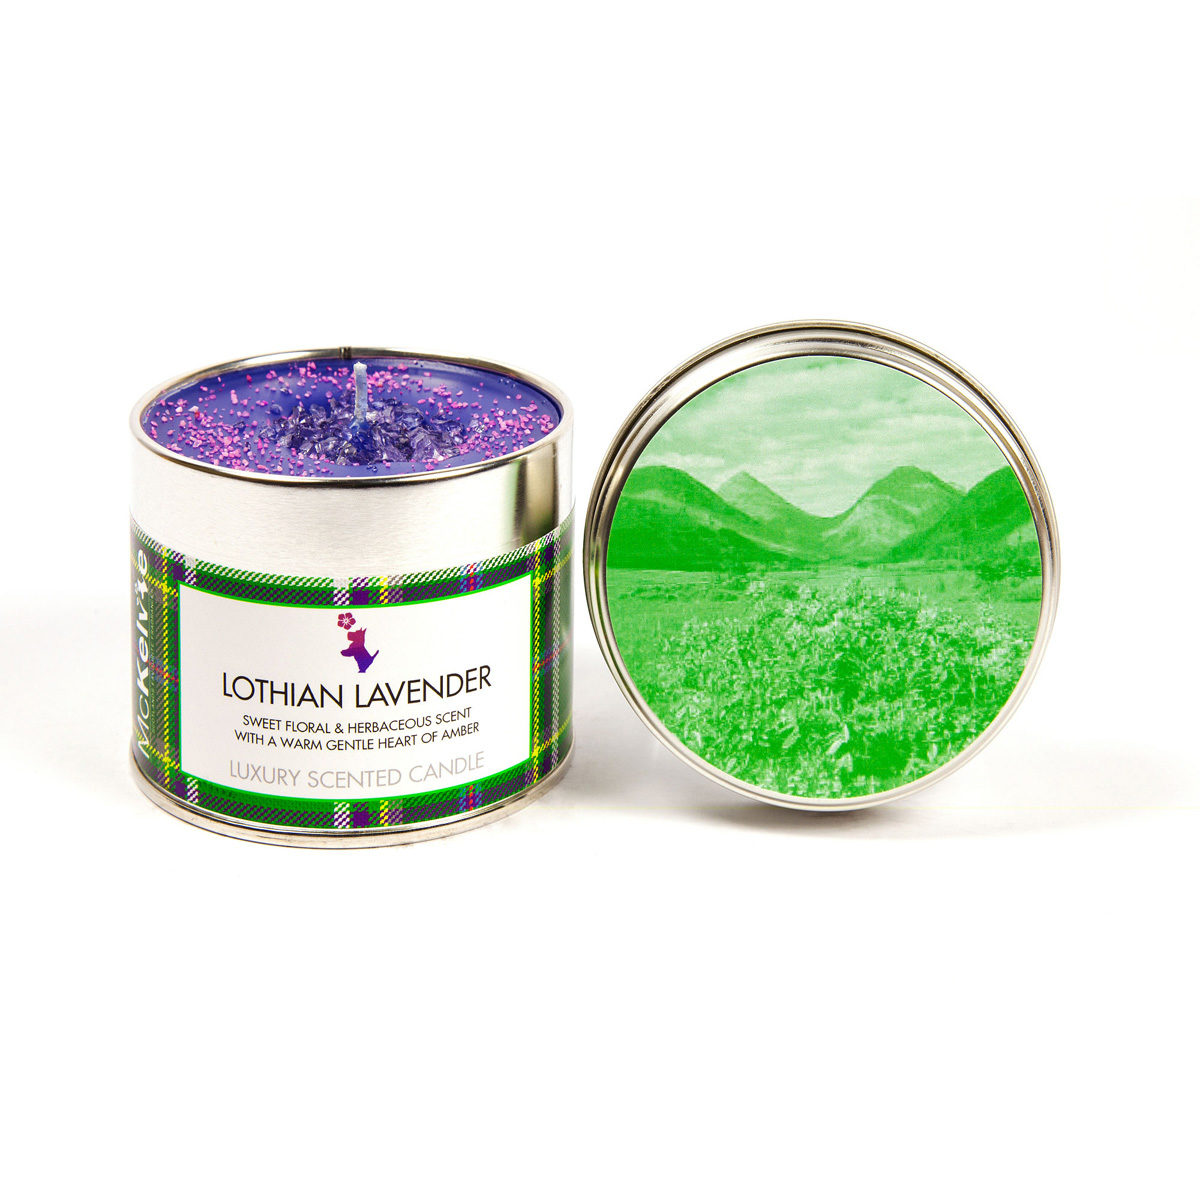 Lothian Lavender Scented Candle Tin